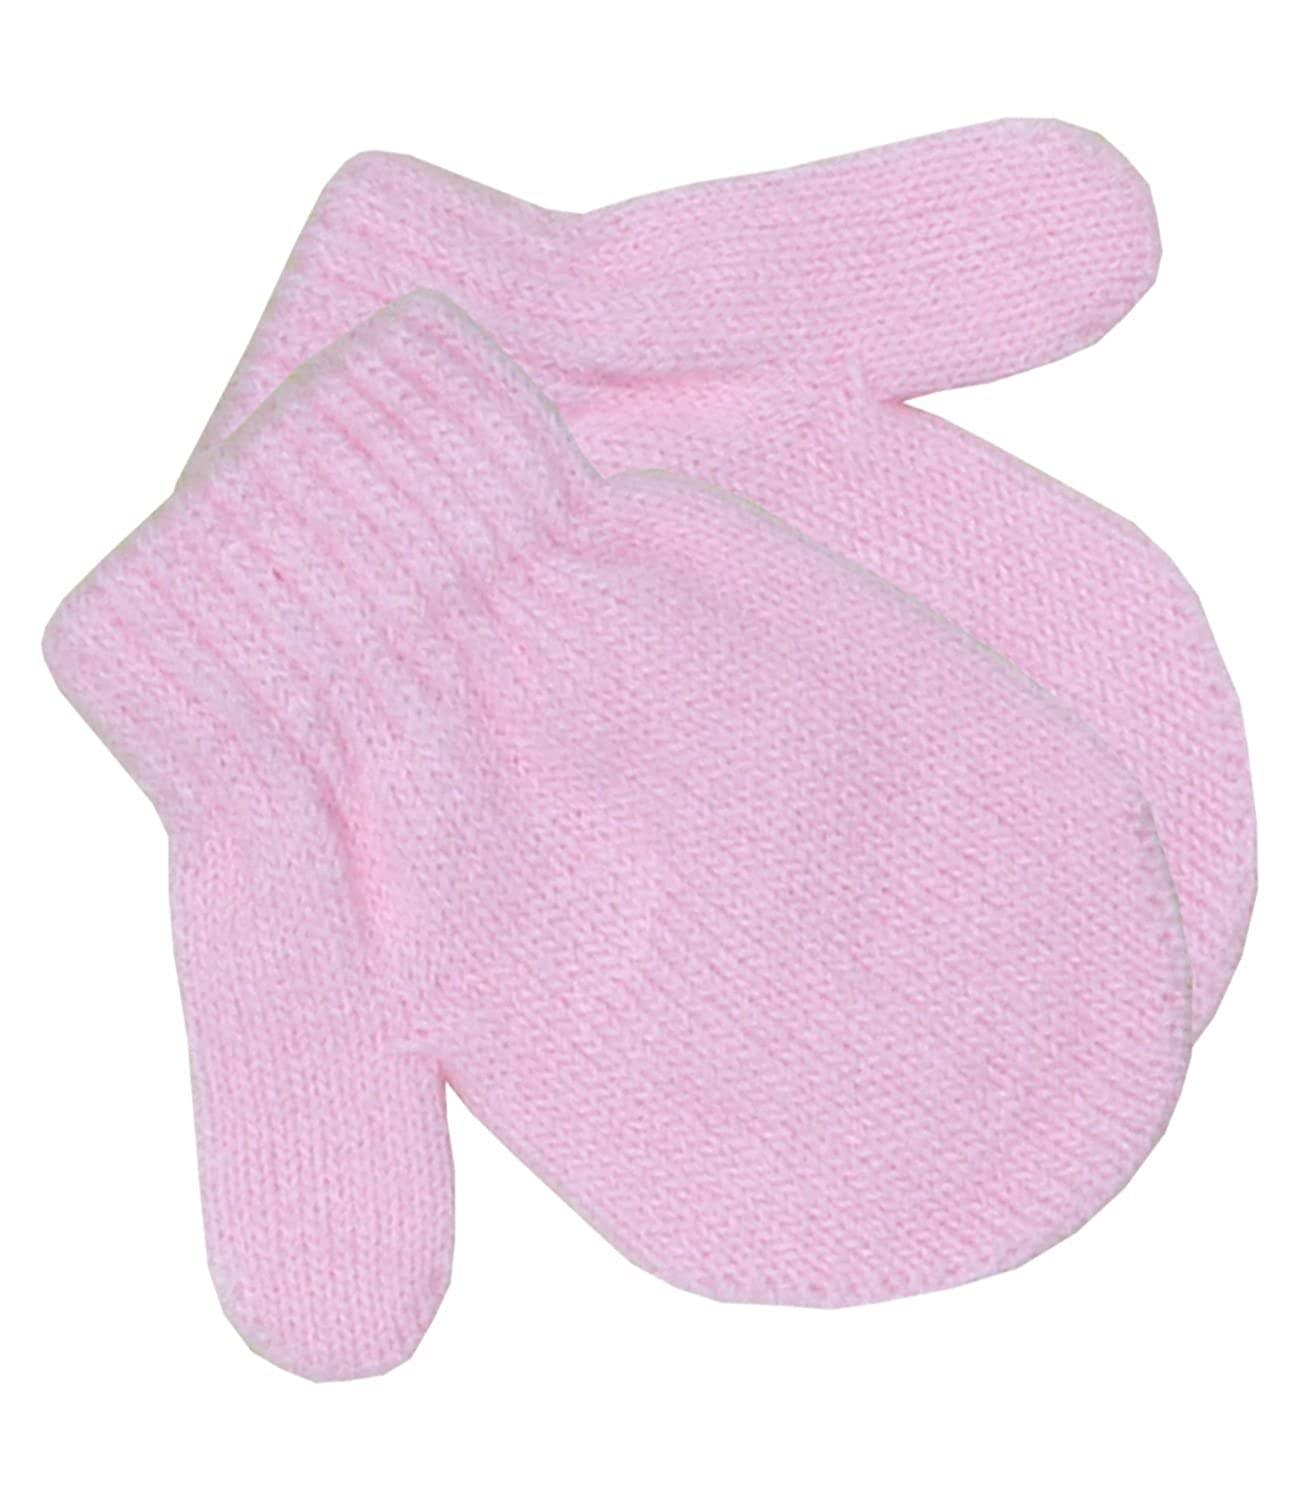 BabyPrem Baby Mittens Gloves Winter Clothes Knitted Pink Blue White Boy Girl PEC704